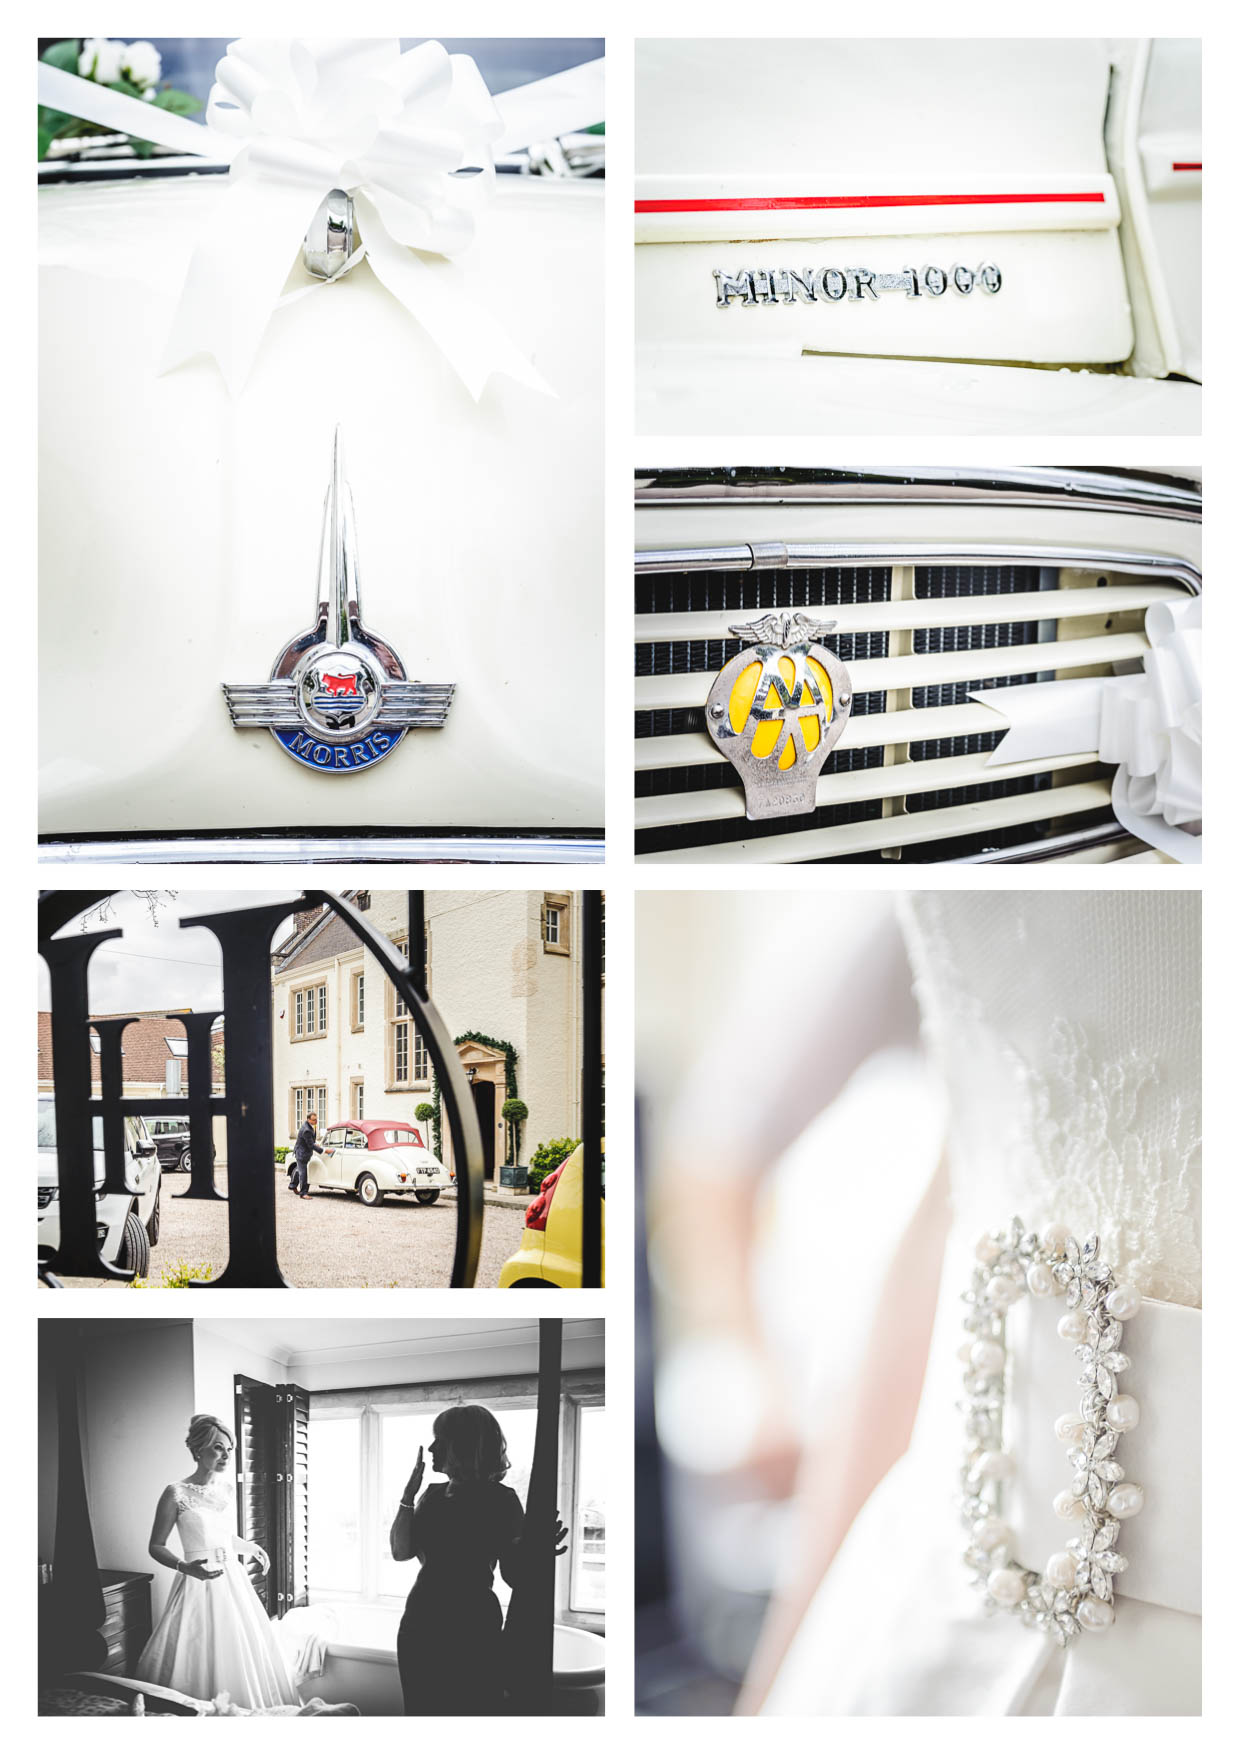 A montage of photos of a wedding at penarth pier pavilion